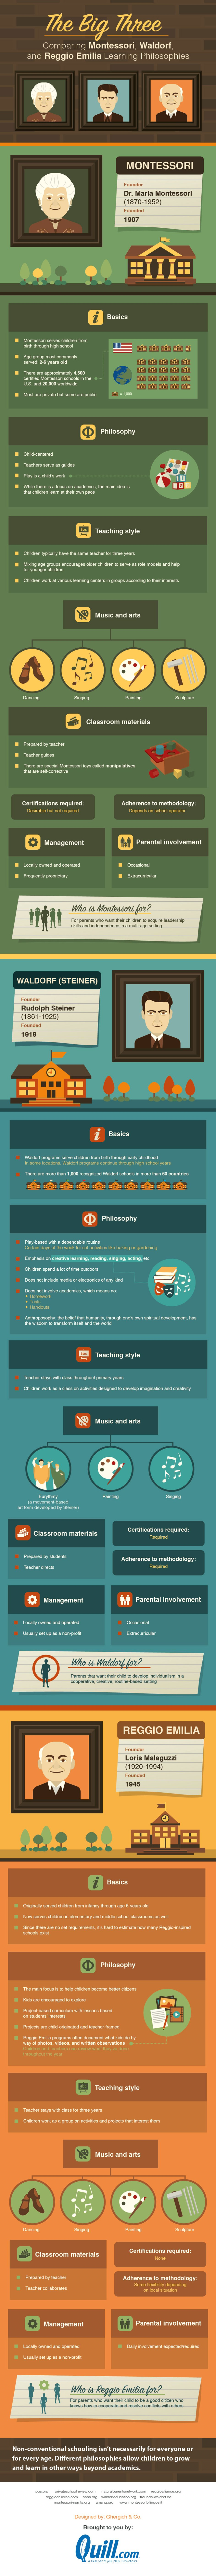 learning-philosophies-infographic